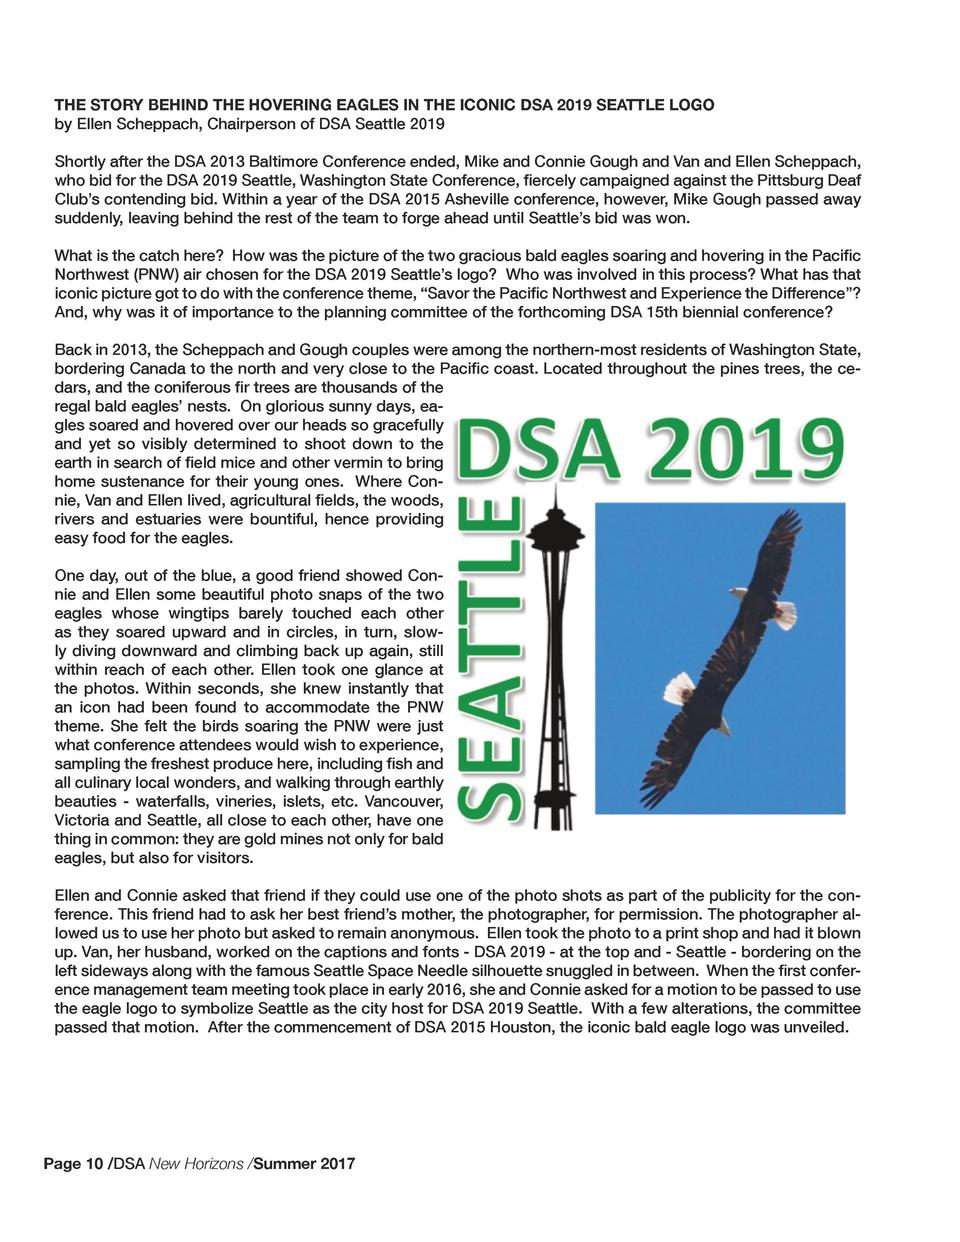 THE STORY BEHIND THE HOVERING EAGLES IN THE ICONIC DSA 2019 SEATTLE LOGO by Ellen Scheppach, Chairperson of DSA Seattle 20...